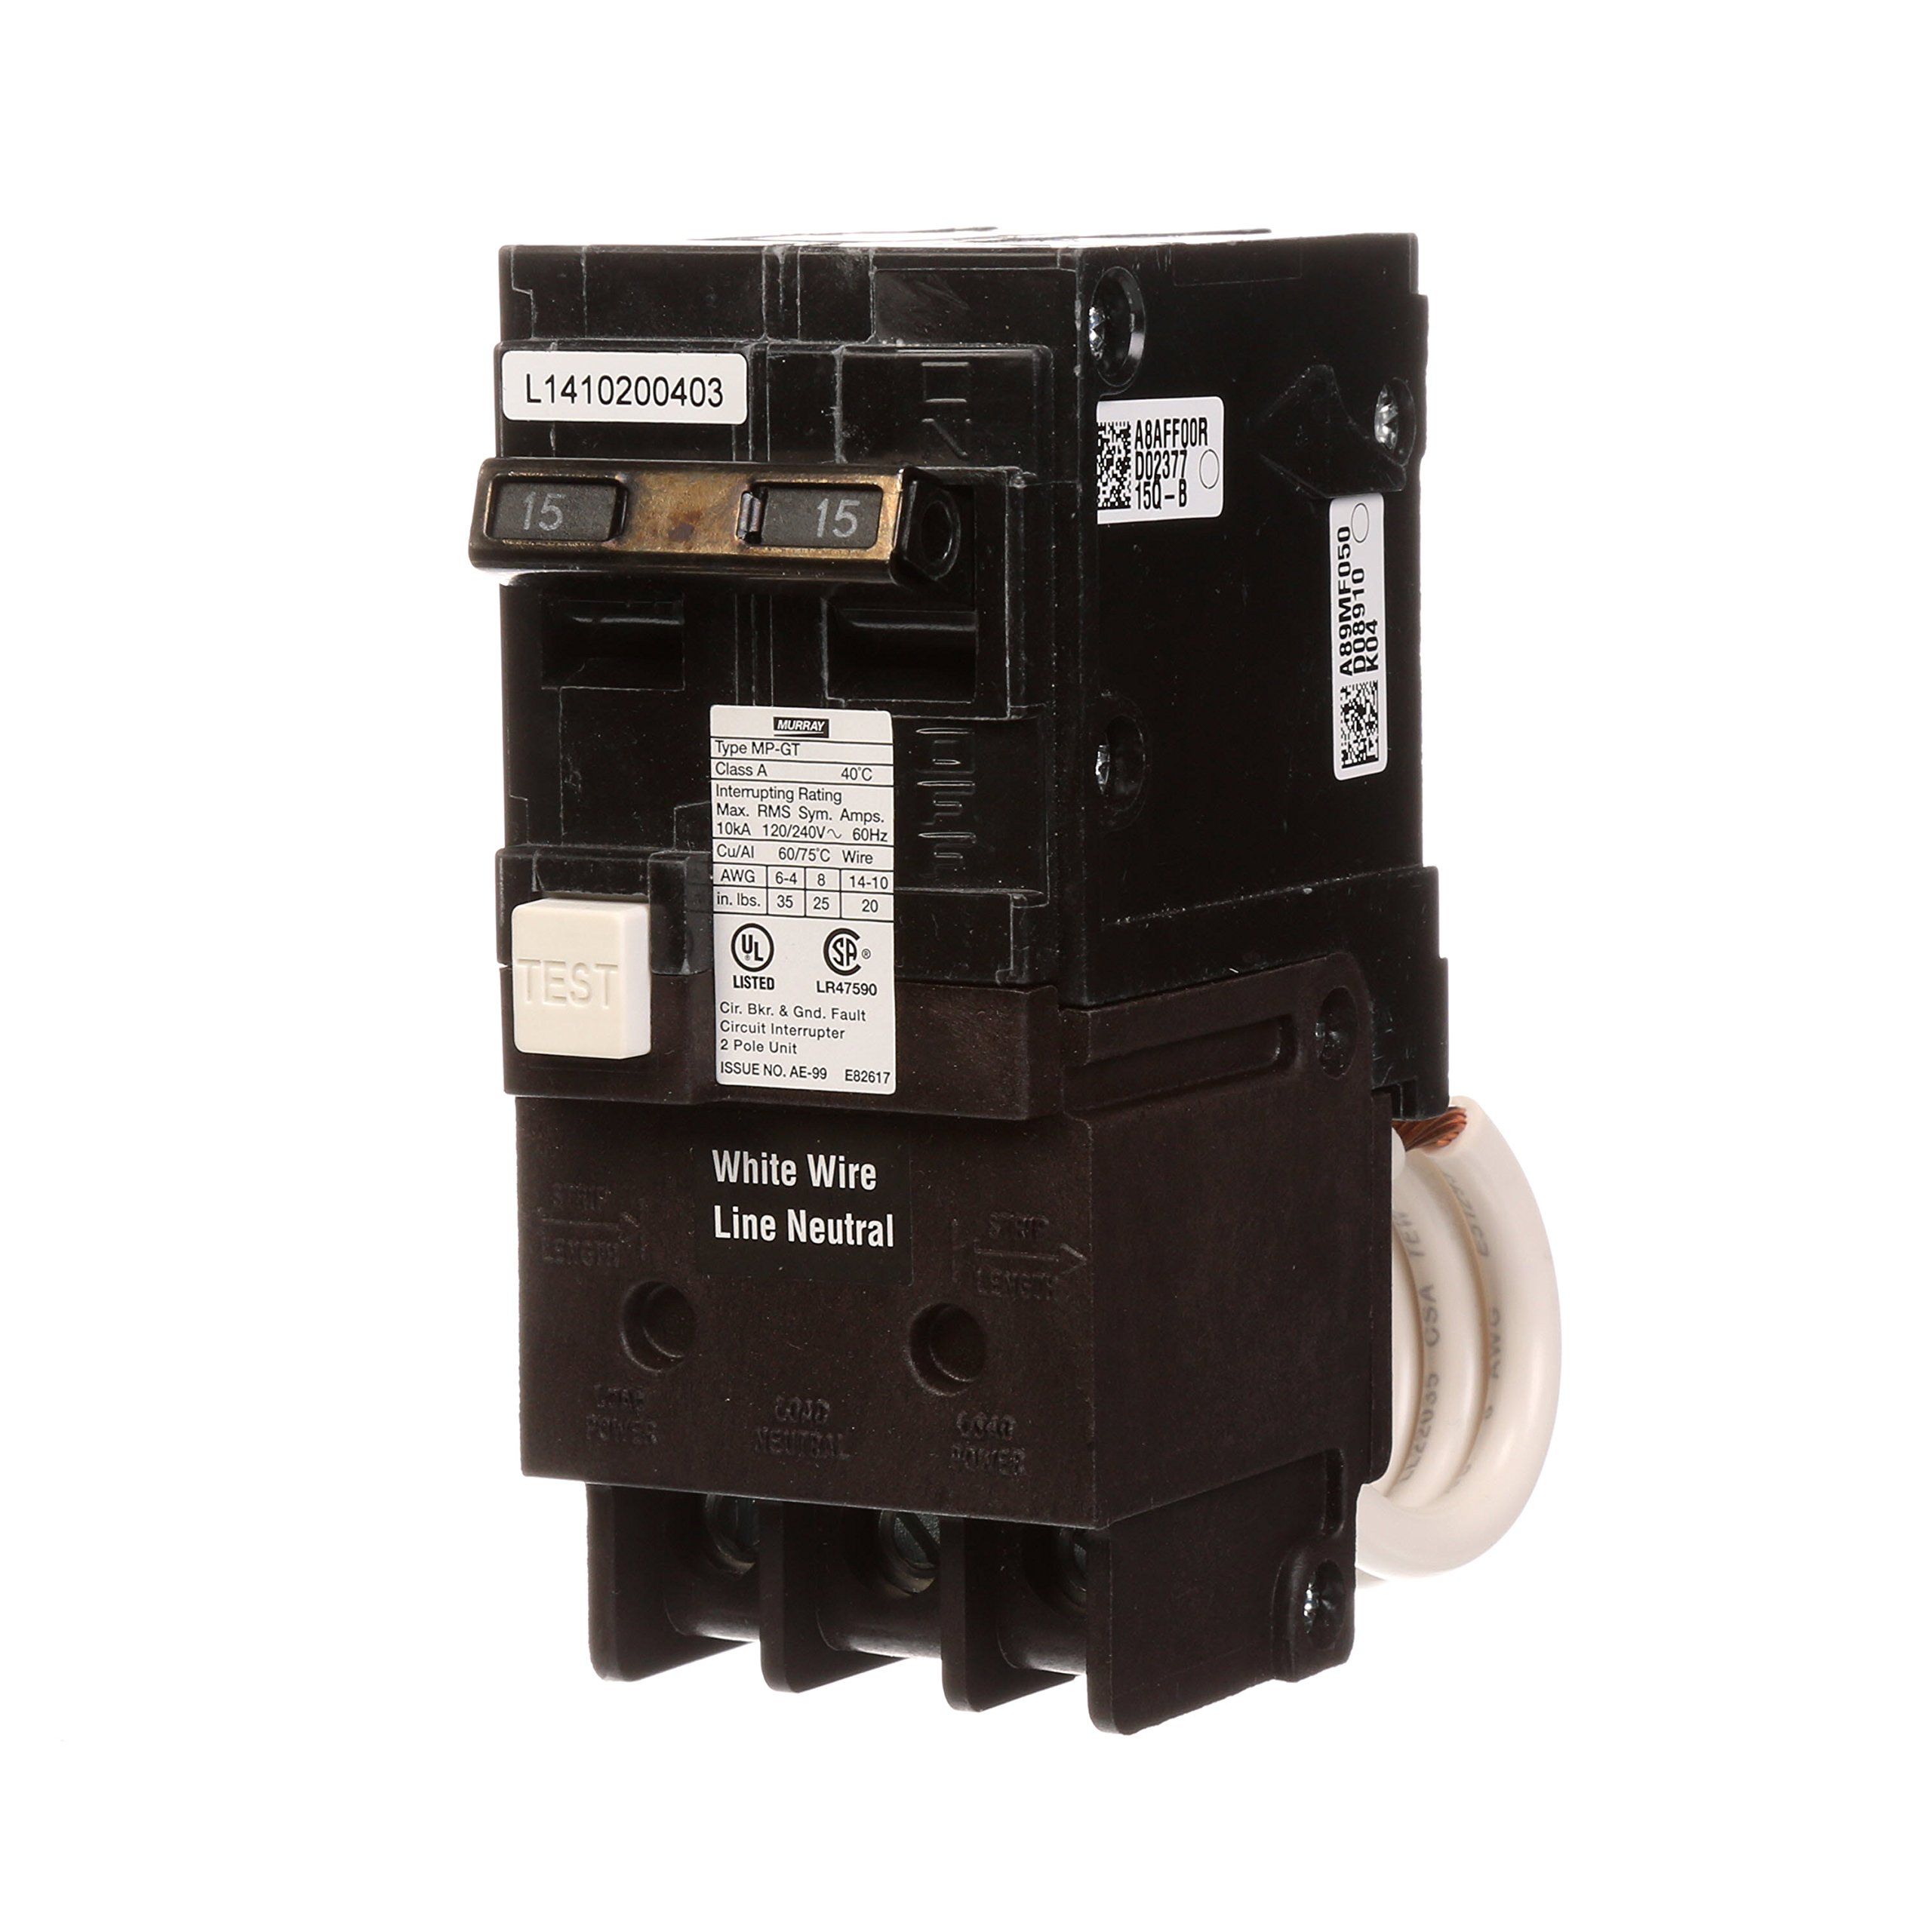 Murray MP215GFA 15 Amp 2-Pole Gfci Circuit Breaker with Self Test & Lockout Feature